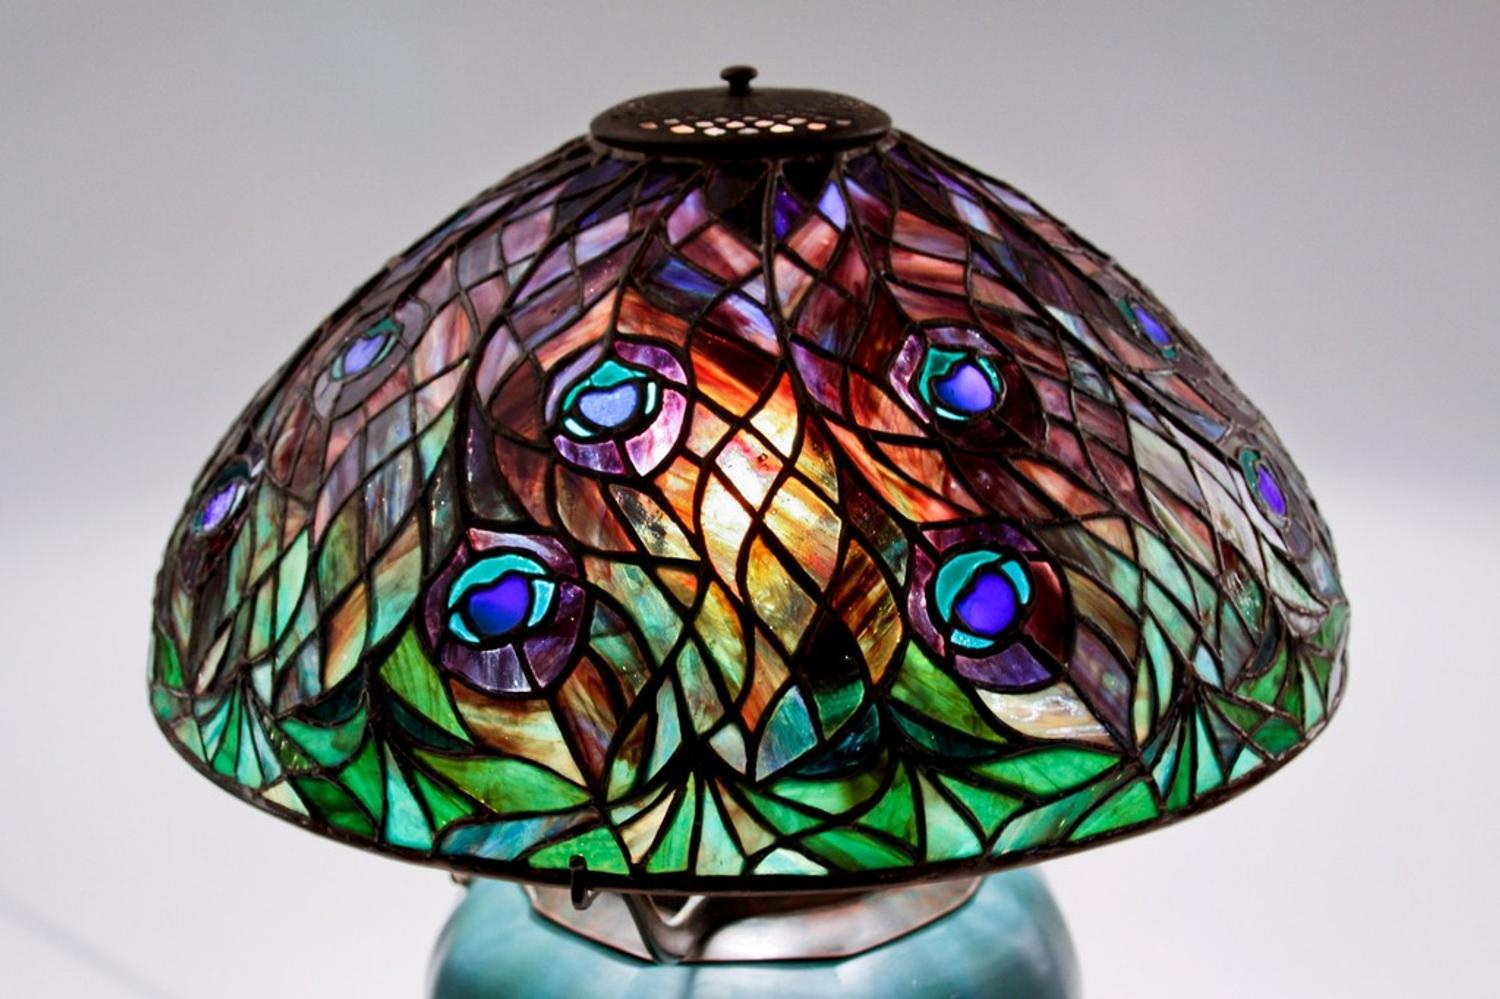 Tiffany Studios Lamps And Glass At Masterpiece London